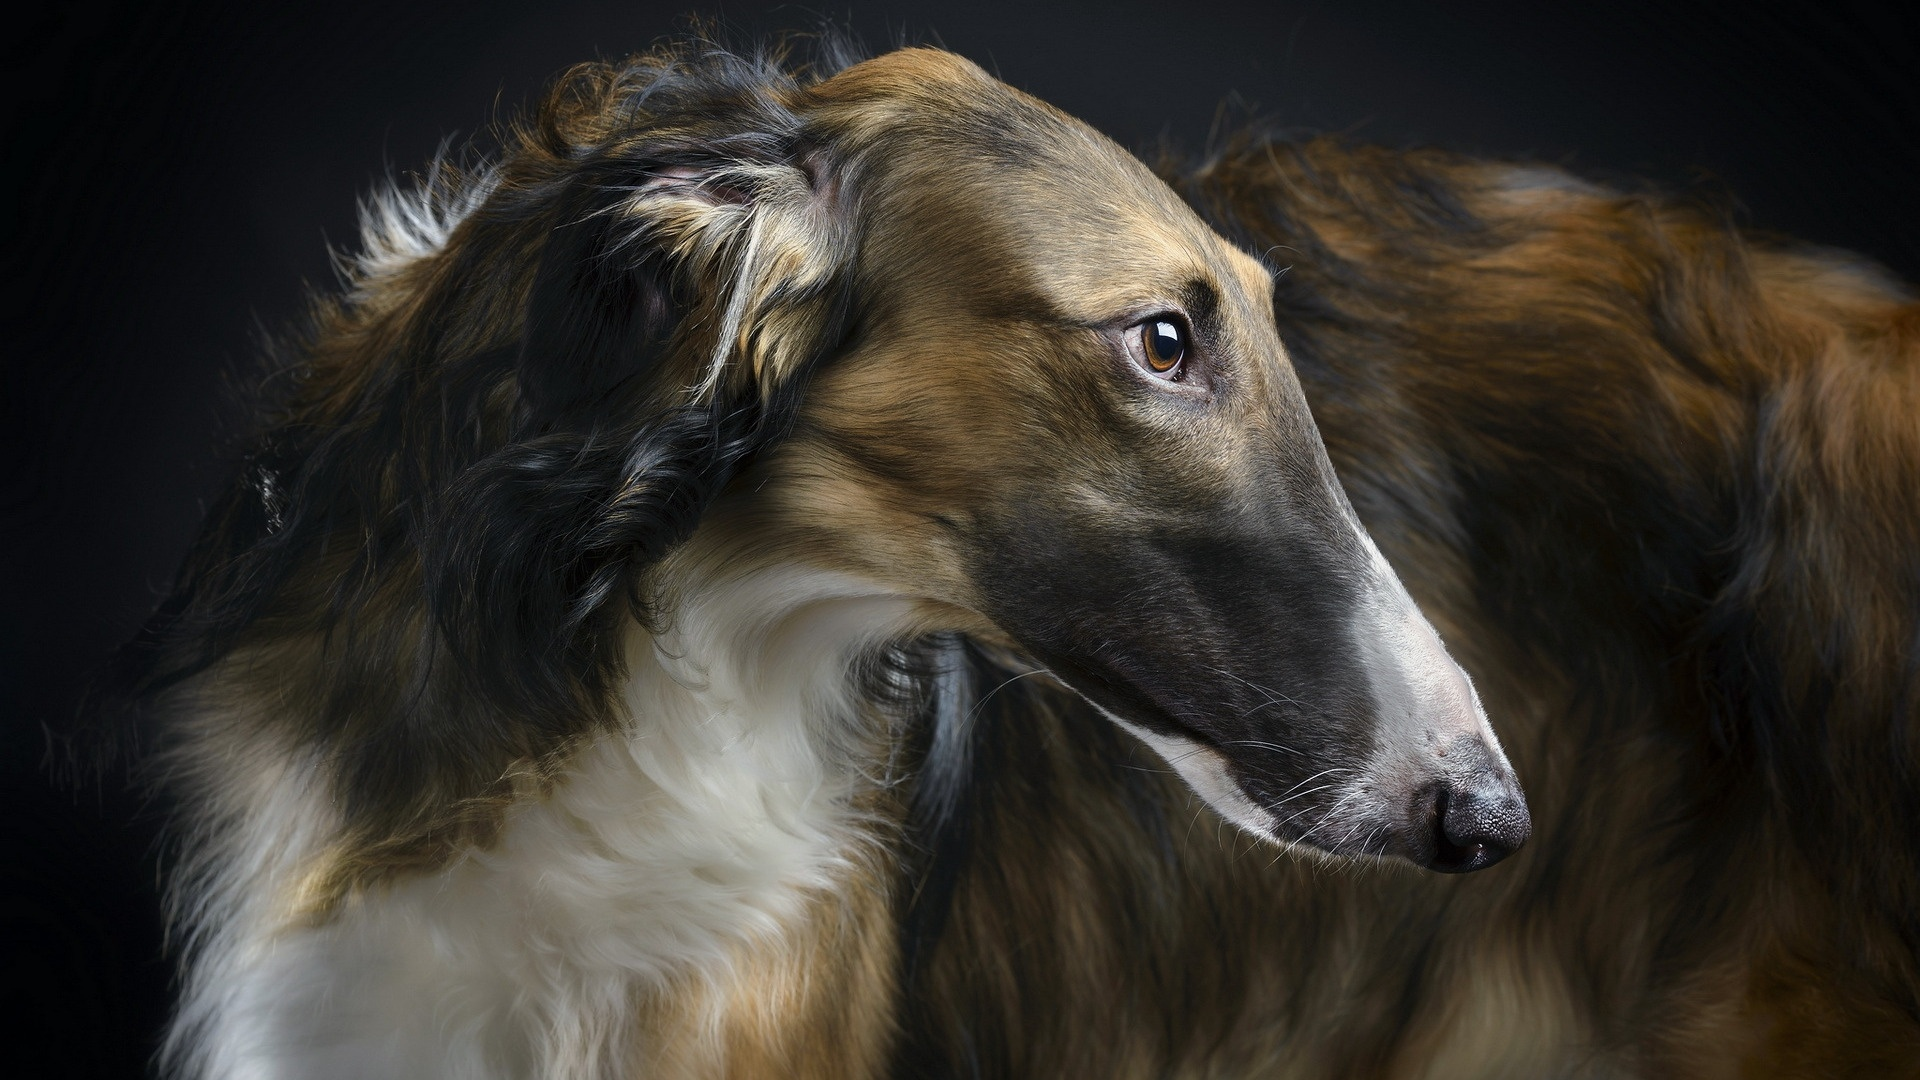 Afghan Hound wallpaper for desktop